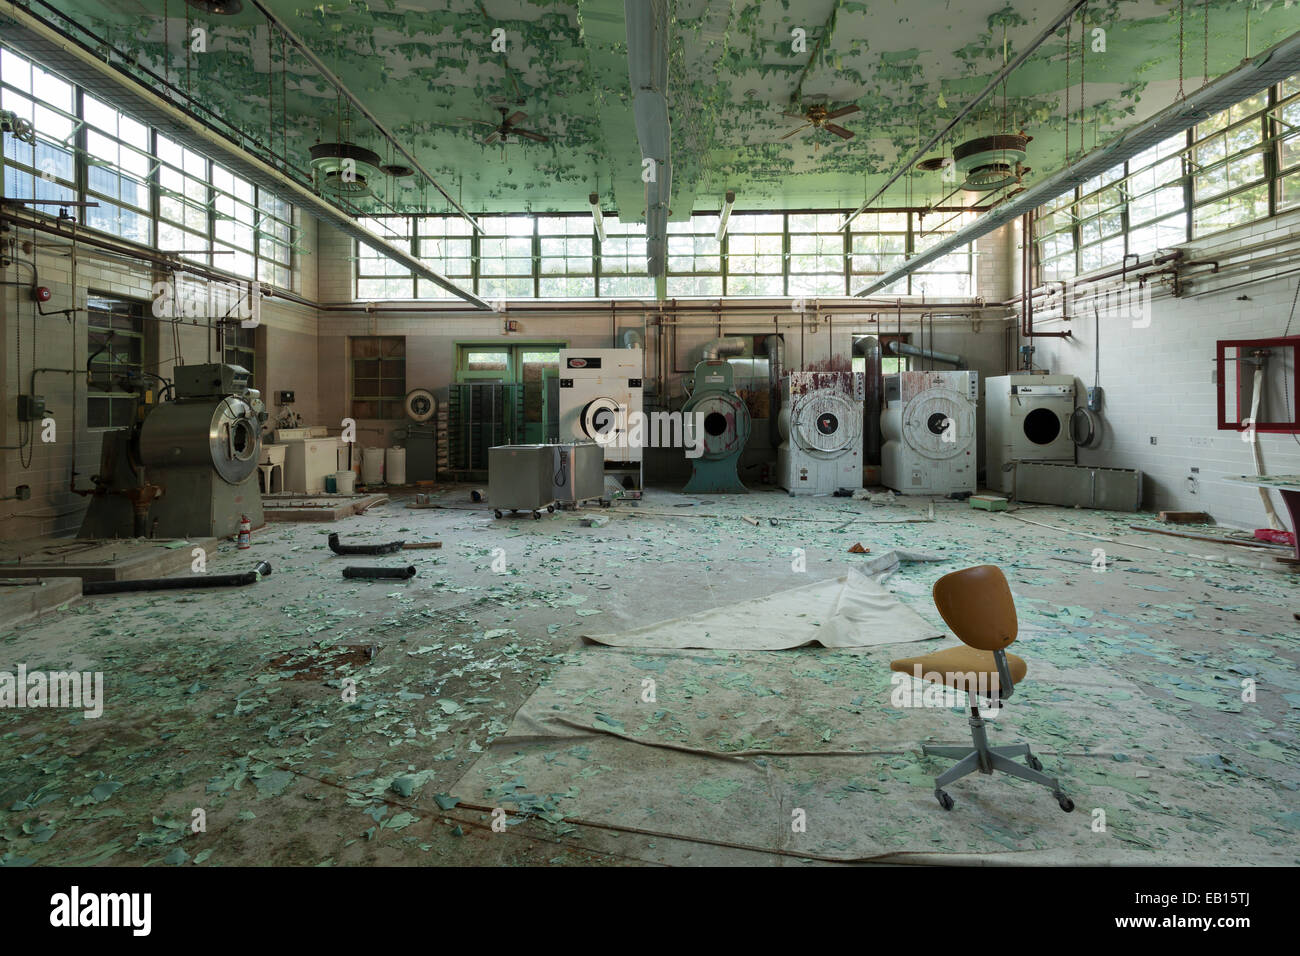 The laundry facilities in an abandoned hospital. Ontario, Canada. - Stock Image